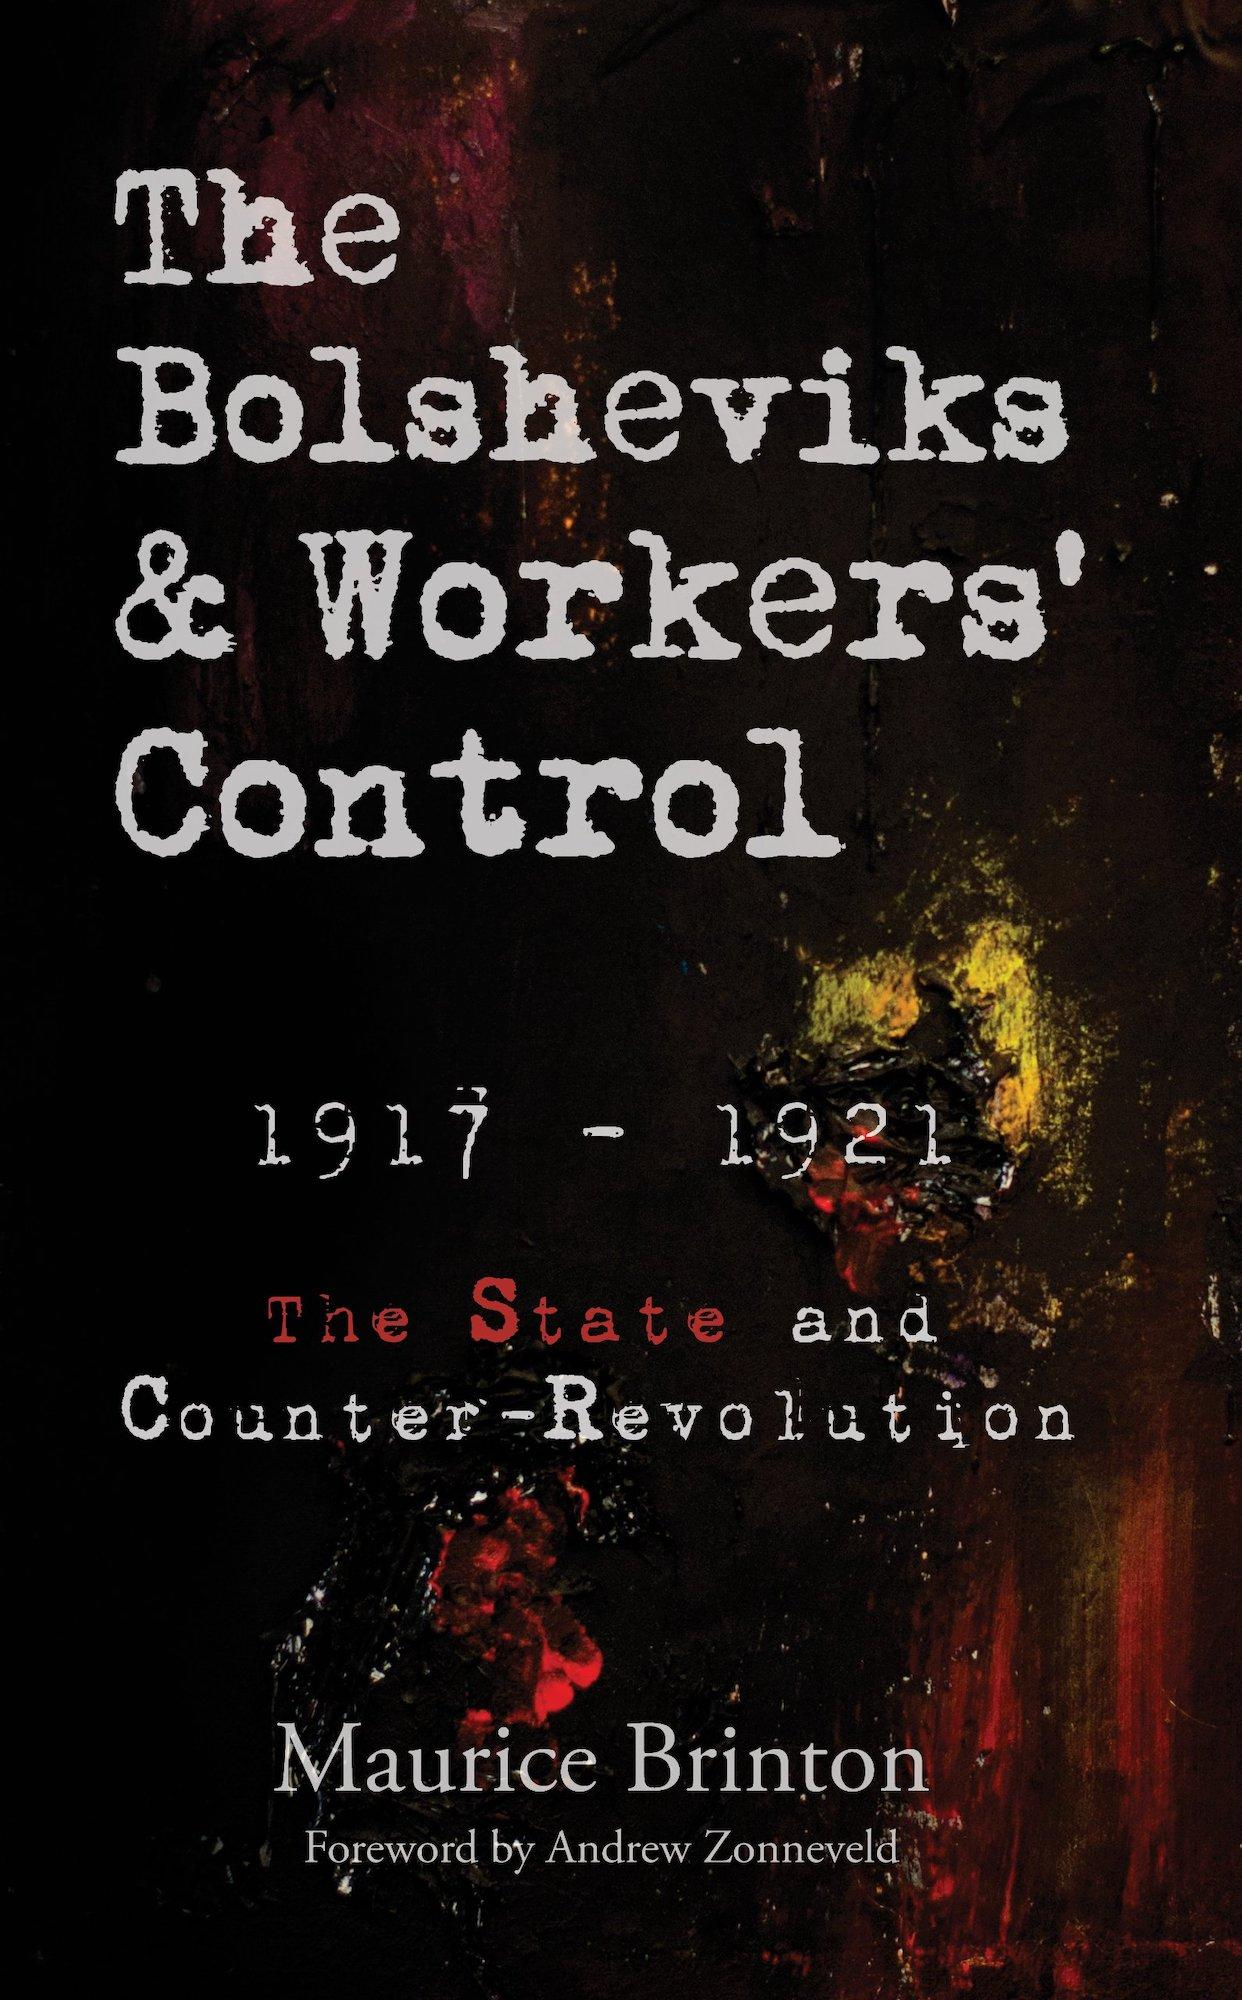 The Bolsheviks and Workers' Control